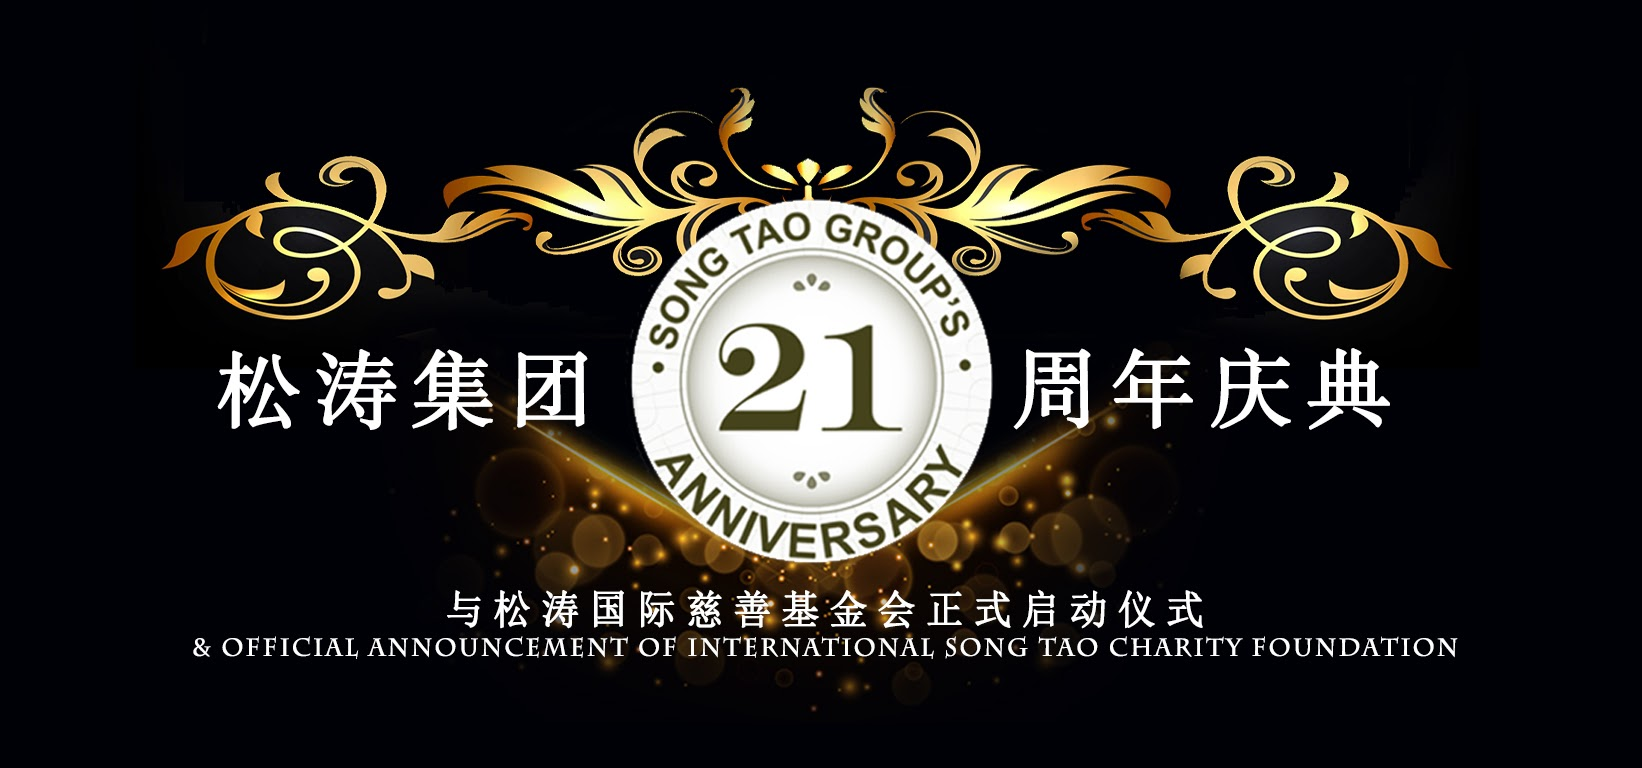 International Song Tao Charity Foundation Launch Day